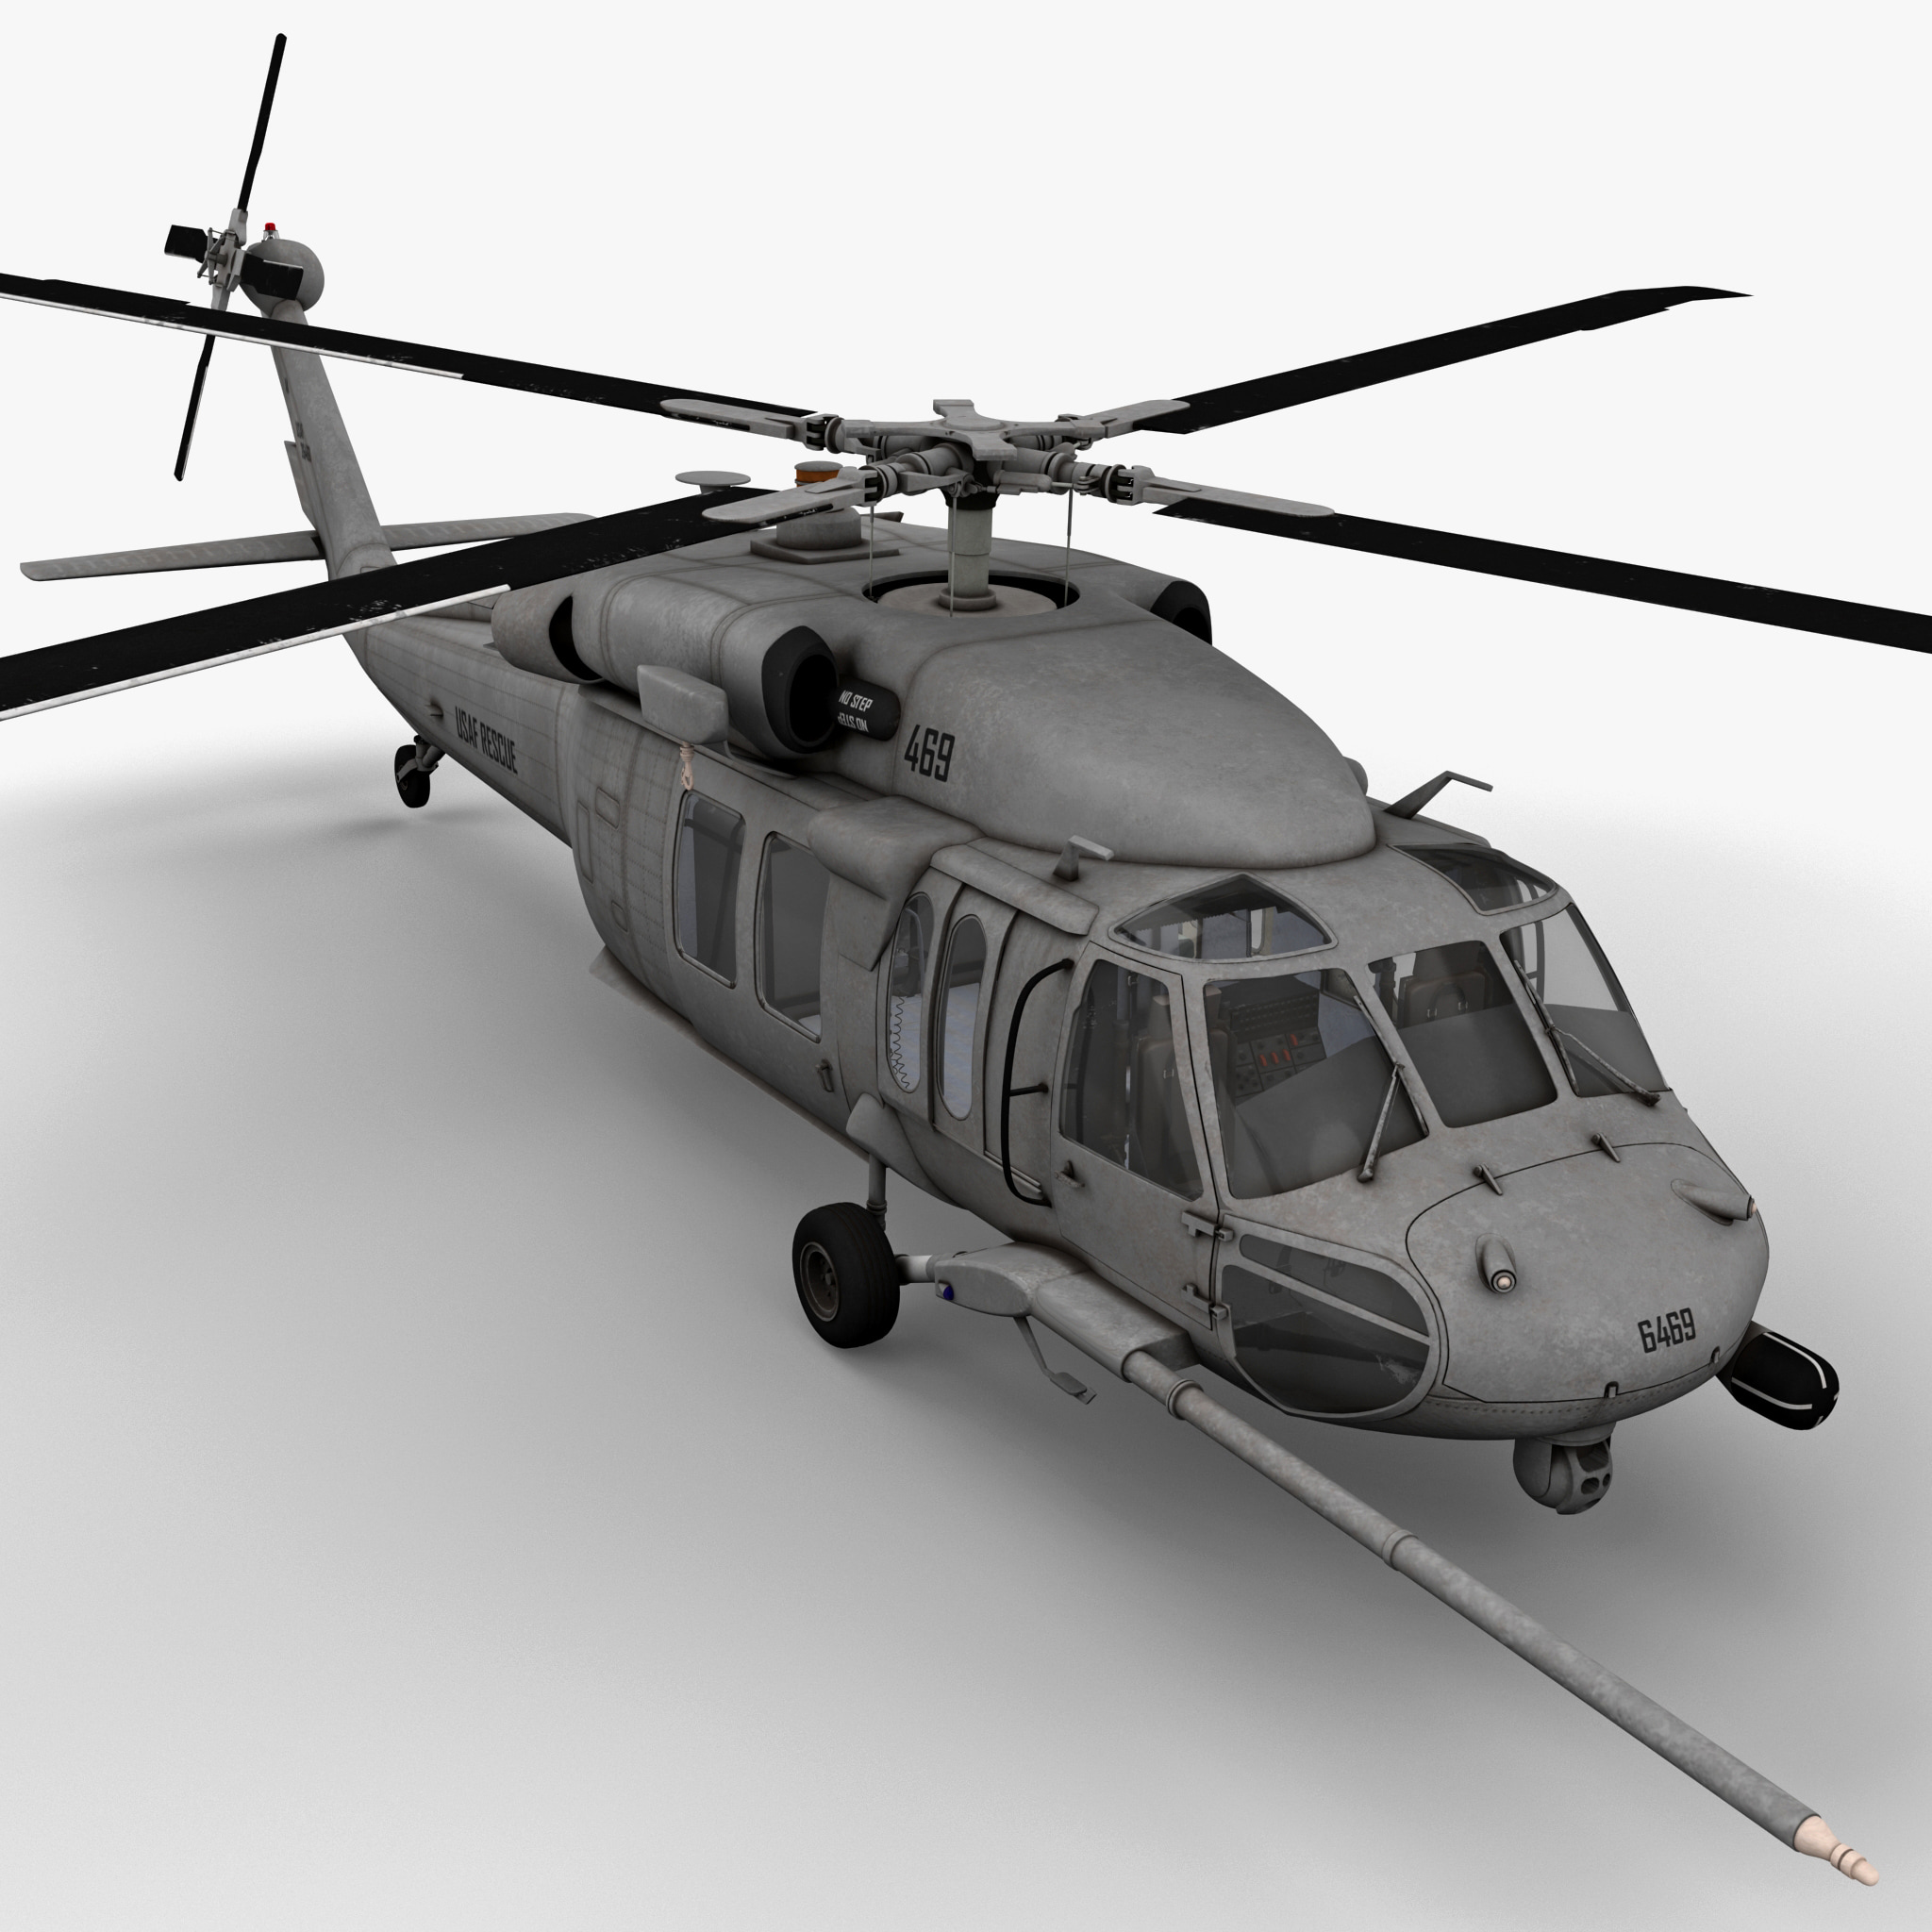 HH-60 Pave Hawk Rigged_2.jpg